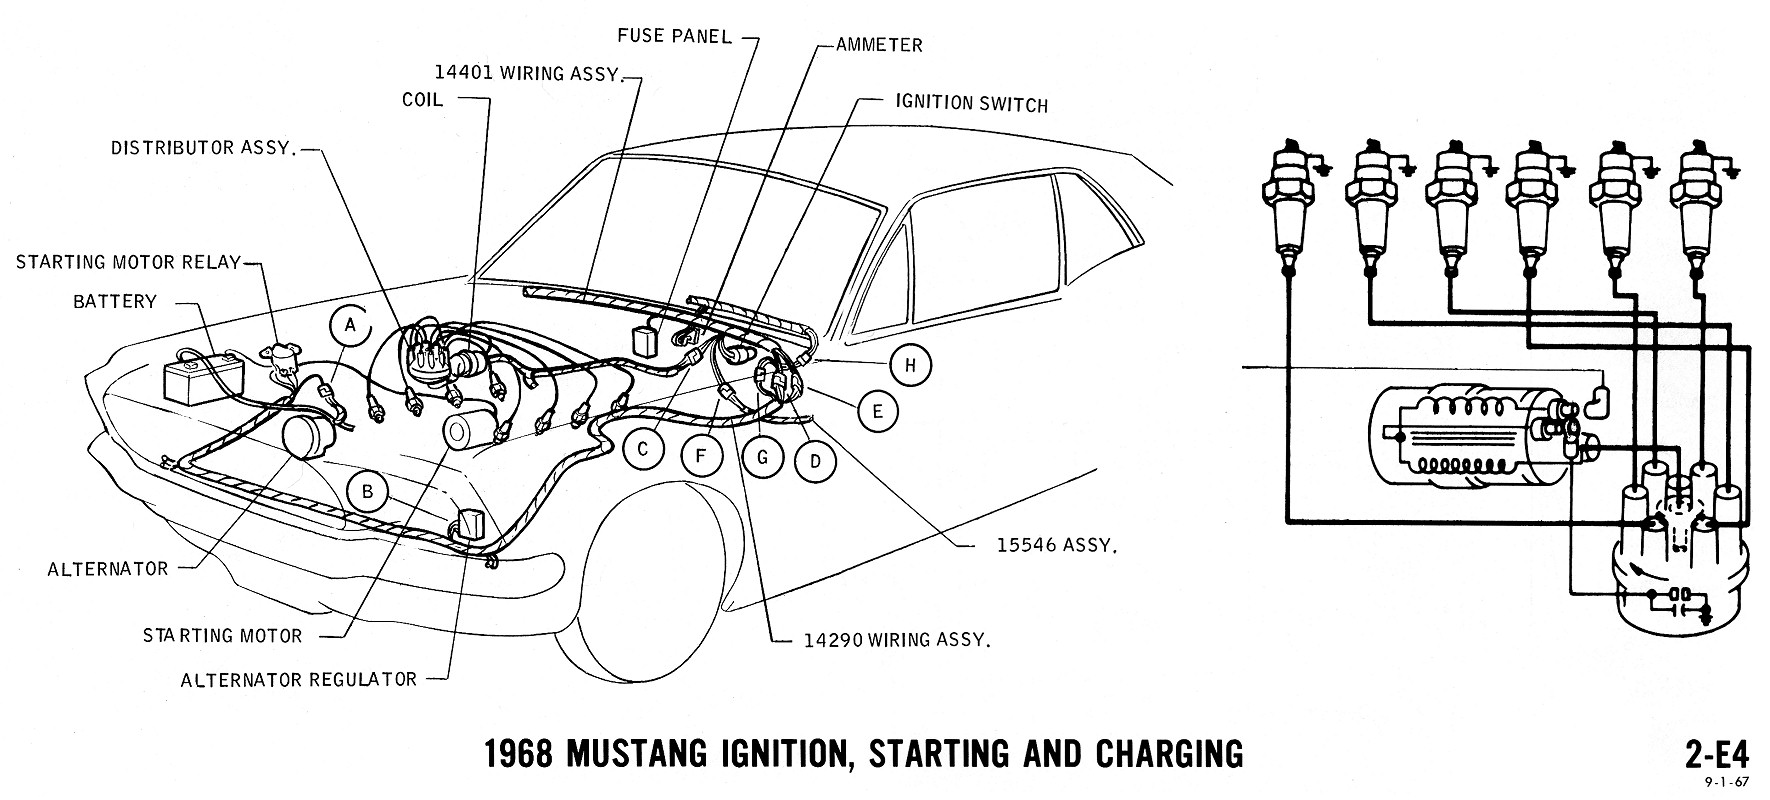 1968 Mustang Wiring Diagrams and Vacuum Schematics - Average Joe RestorationAverage Joe Restoration